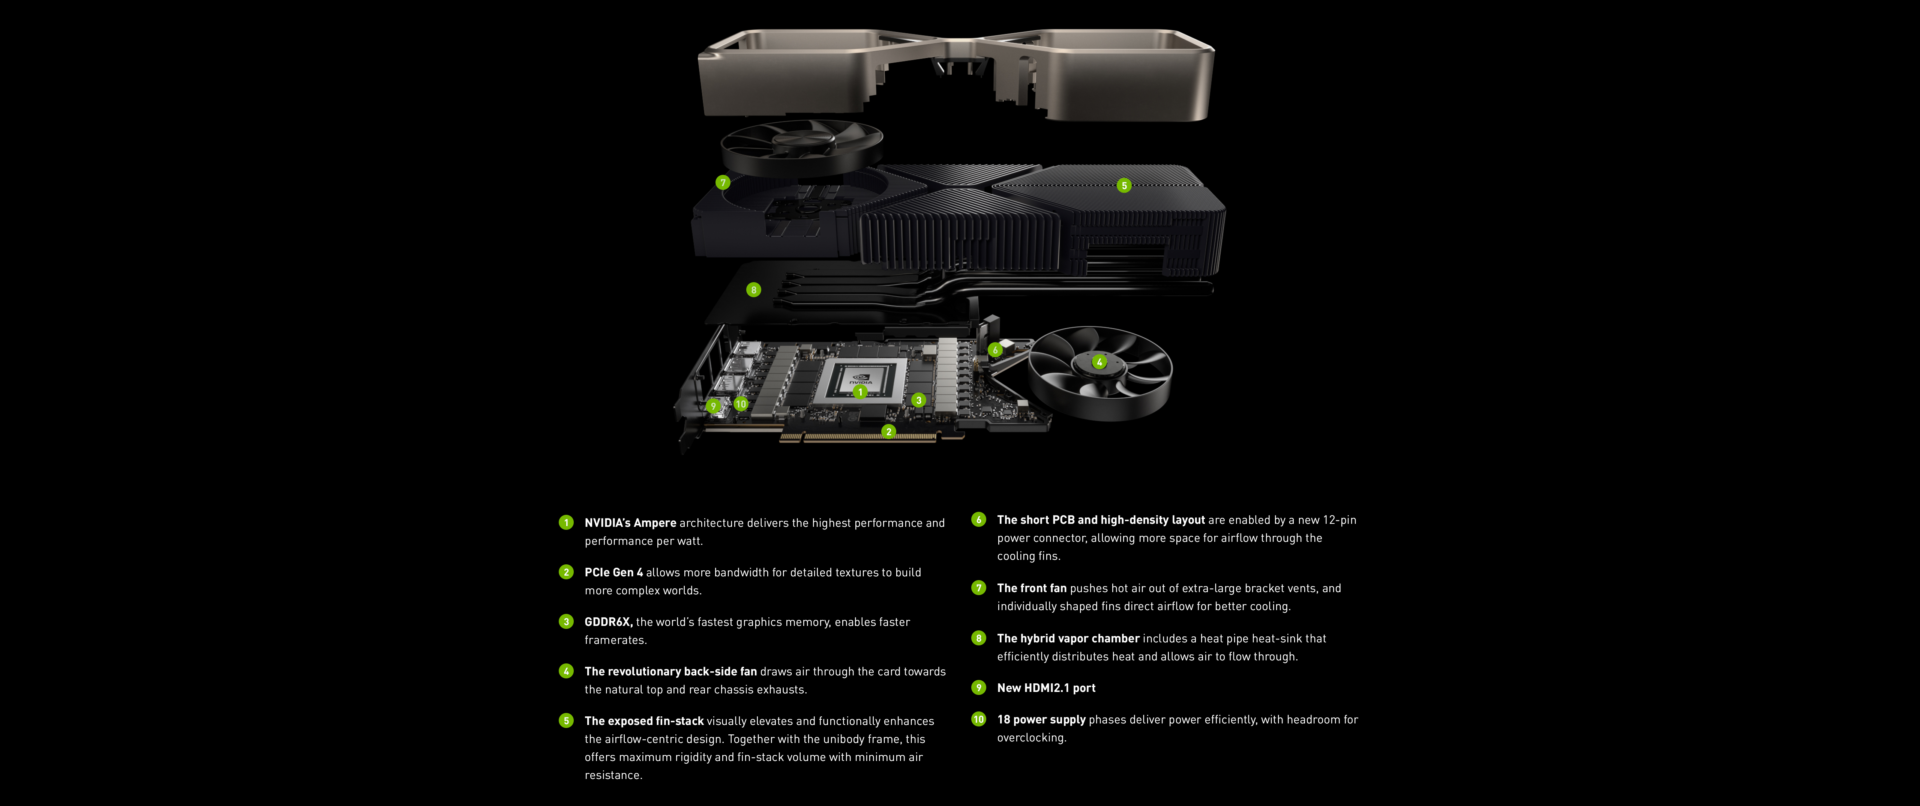 RTX 3080 View of Cooler NVIDIA